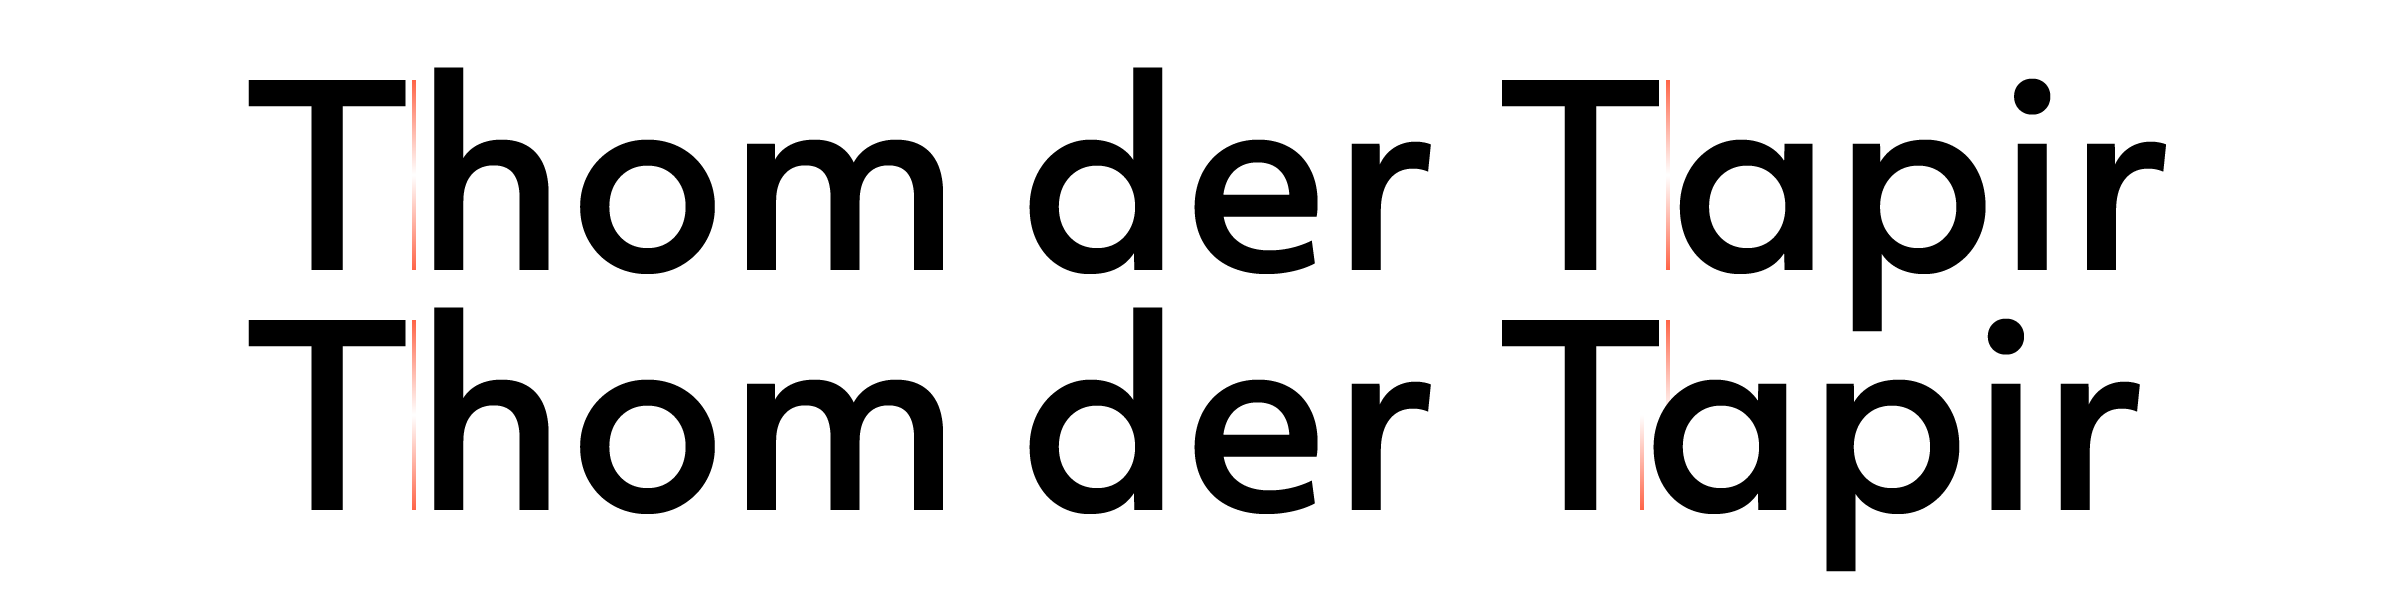 Even with the most careful spacing you cannot provide a solution for every single character pair. To illustrate this, kerning was disabled in the top line. While the 'Th' pair is fine, the lack of [ascender](/glossary#ascender) in the 'Ta' pair creates an unsightly gap between the two characters. Activating the kerning in the bottom line makes the bounding boxes overlap, allowing the 'a' to slide underneath the overhanging arm of the 'T'.